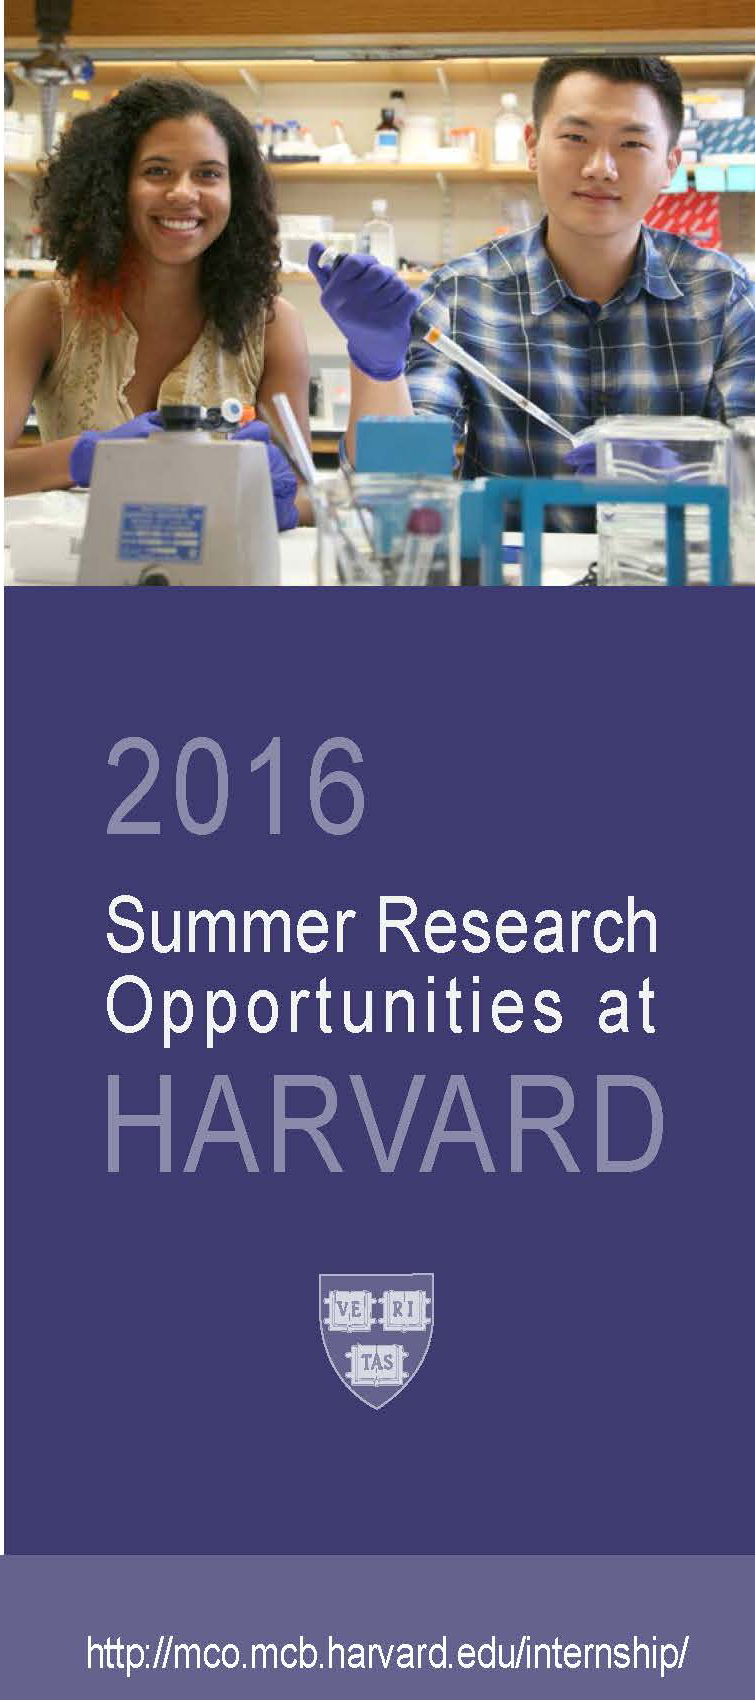 2016 Summer Research Opportunities at Harvard